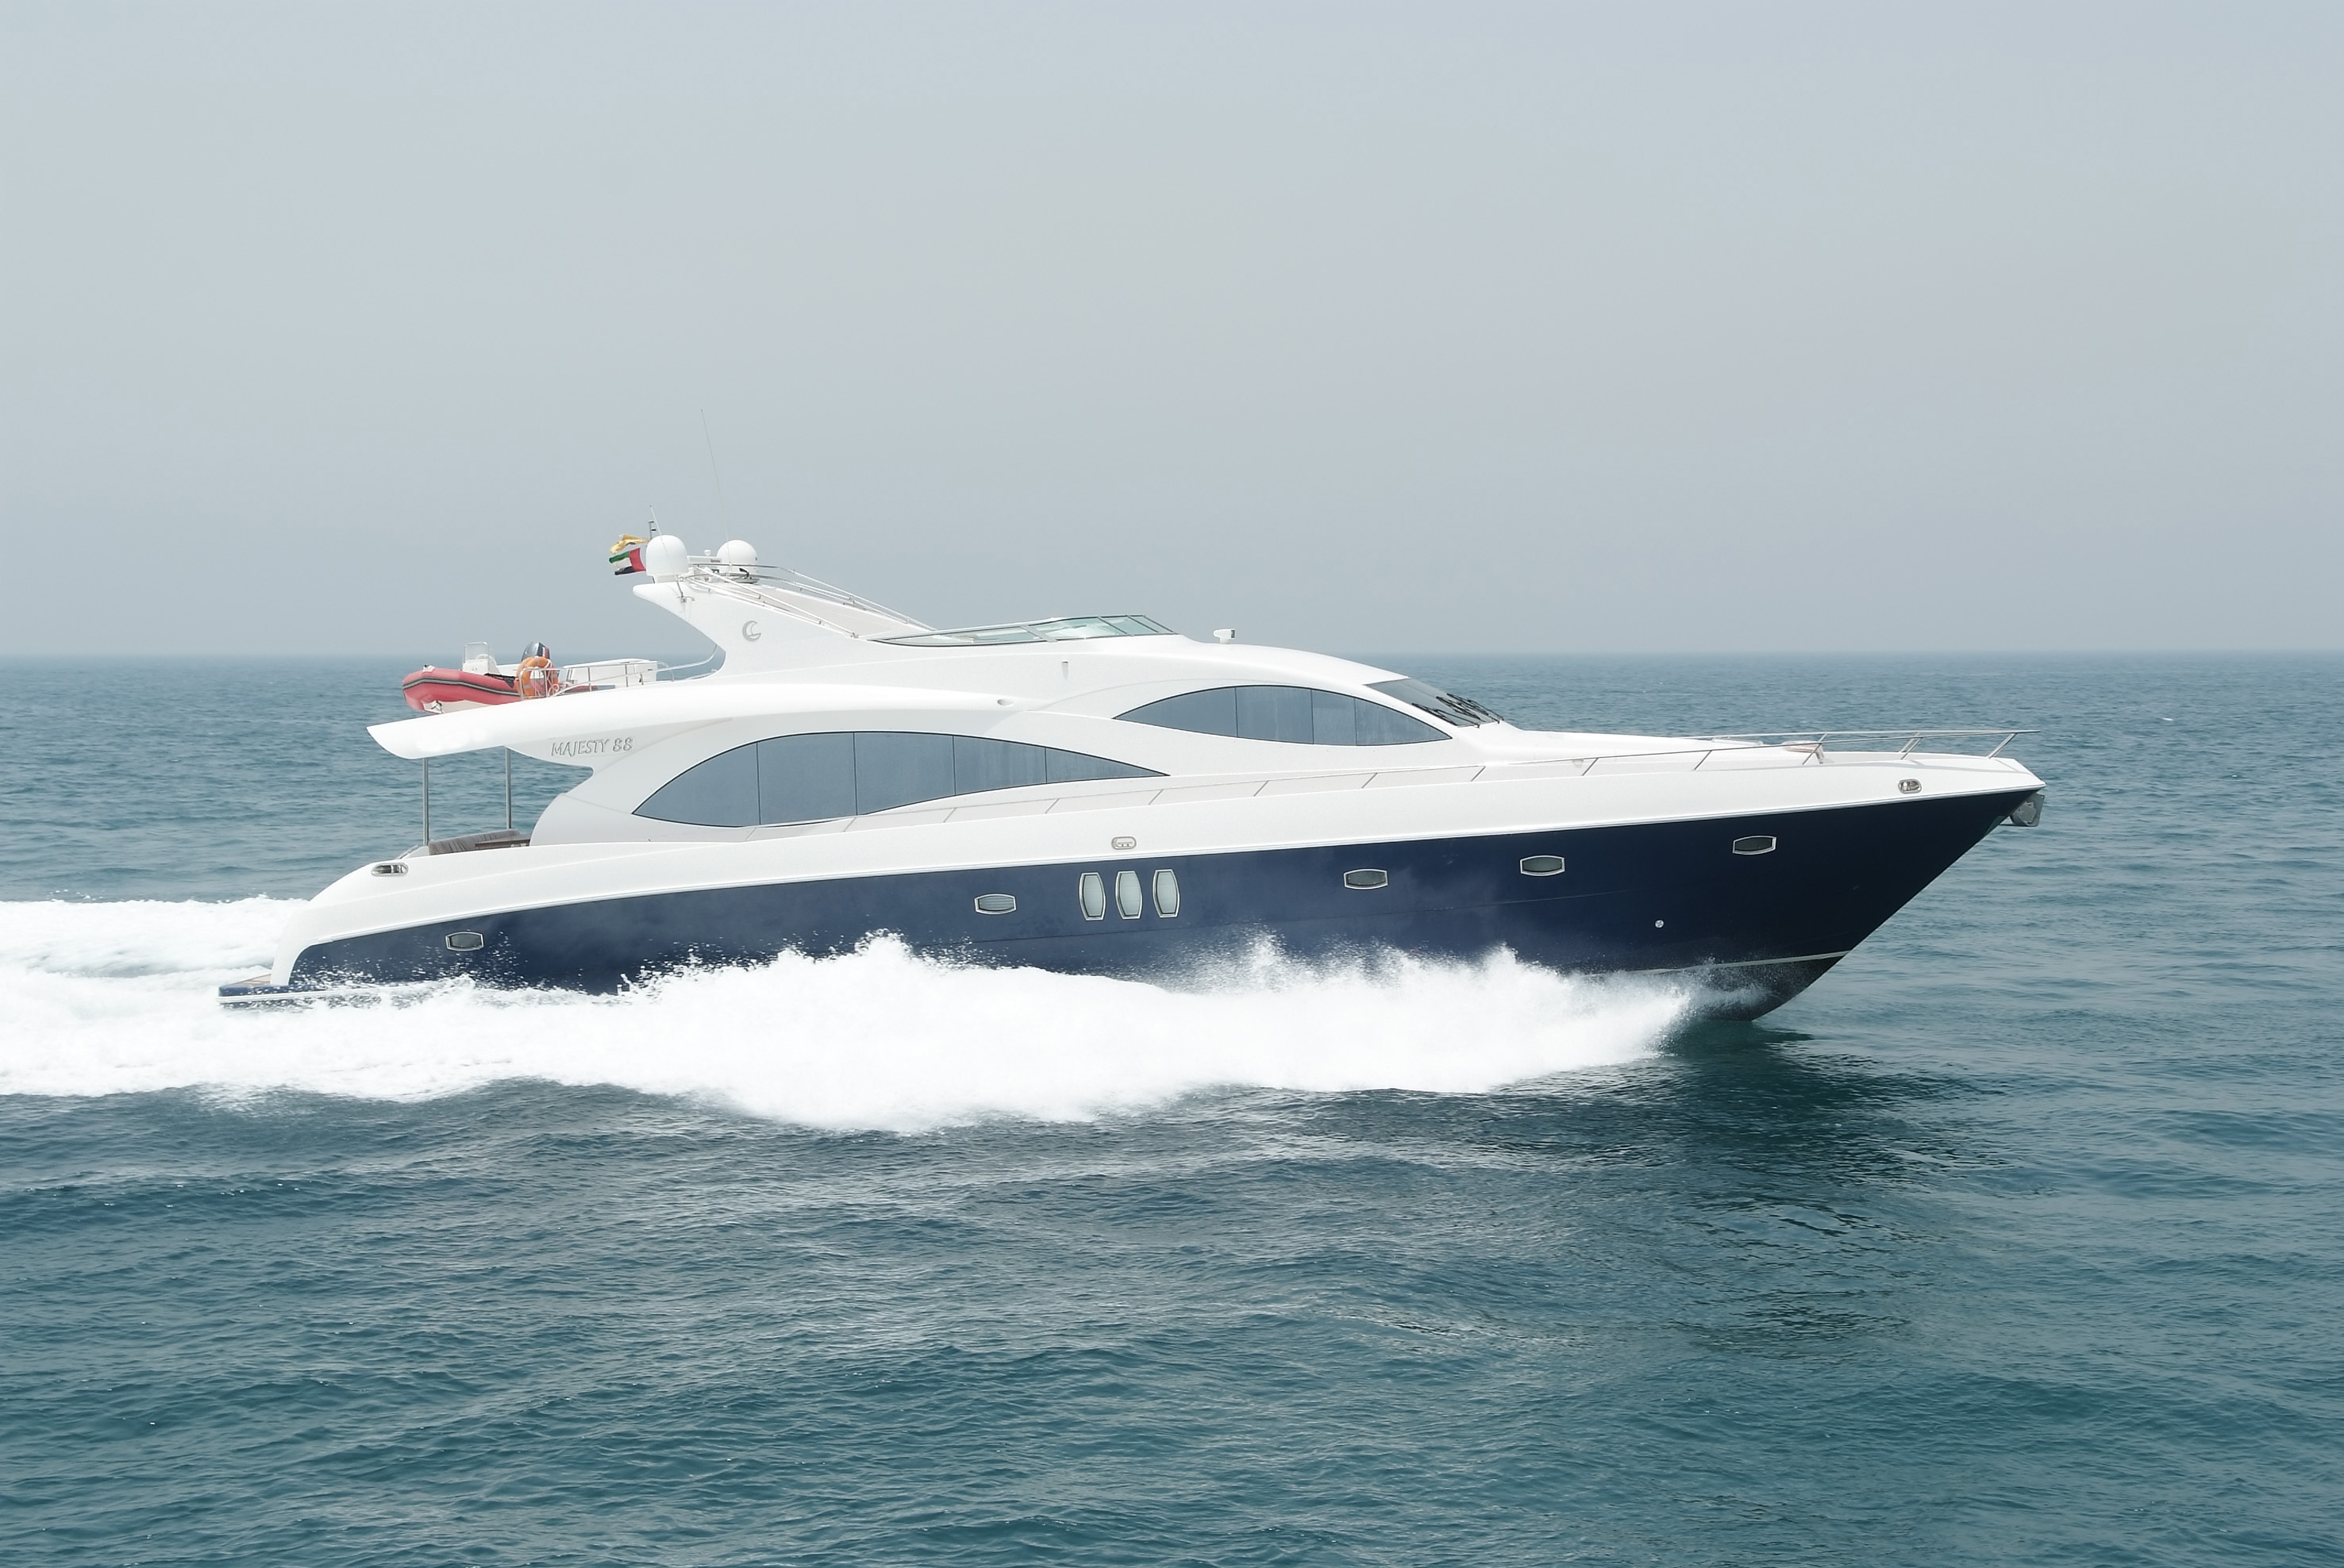 Gulf Craft signs an Agreement with Bush & Noble to market and sell pre-owned Gulf Crafts